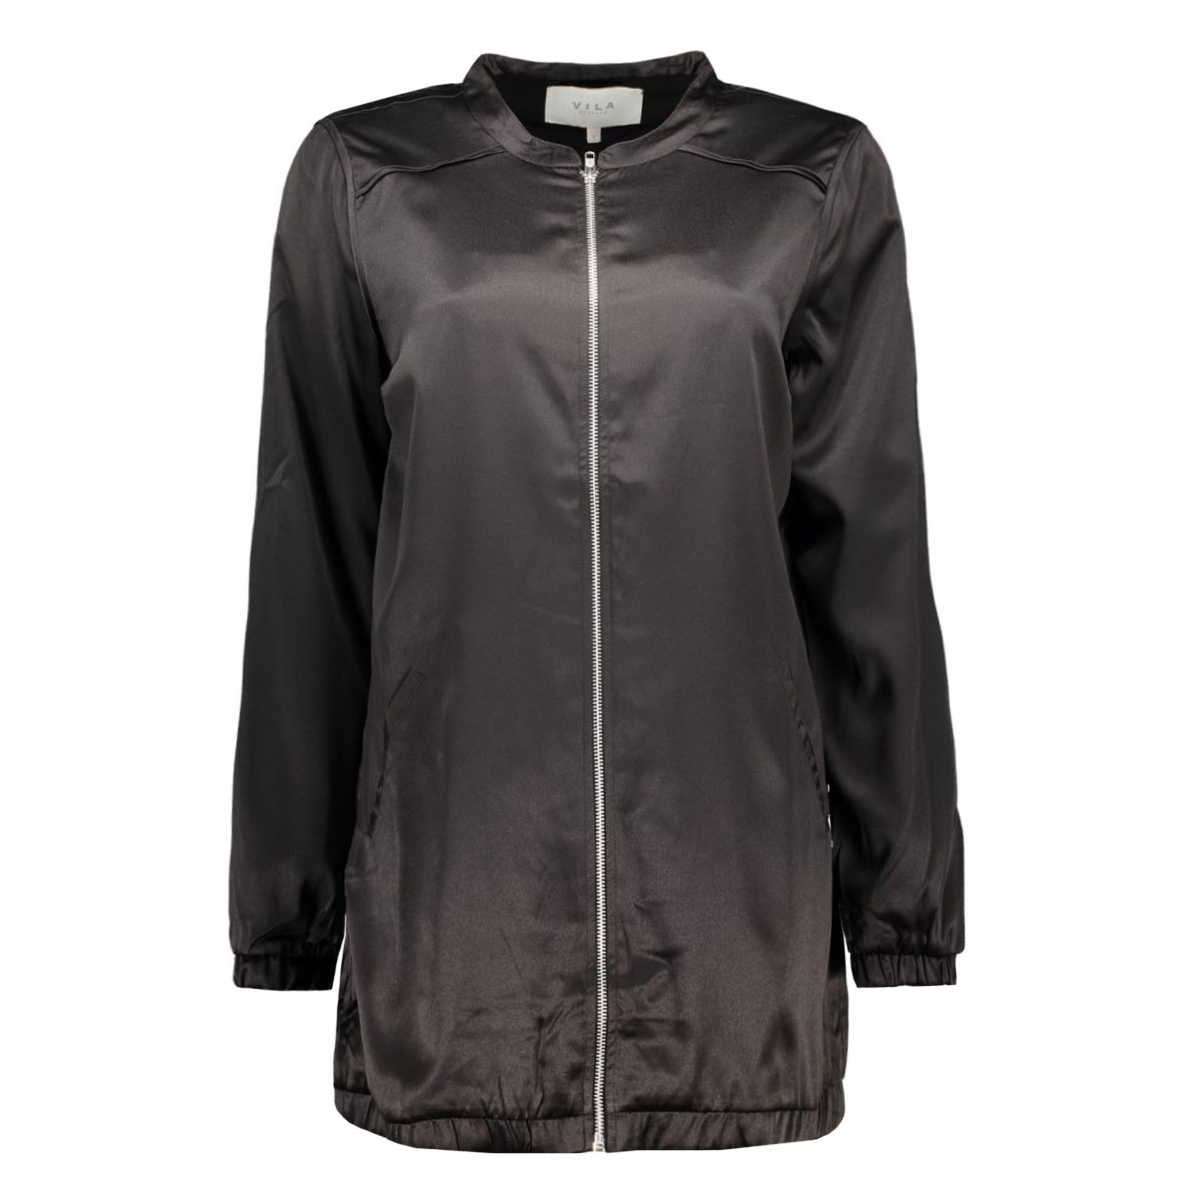 vicentri long bomber jacket 14039045 vila jas black